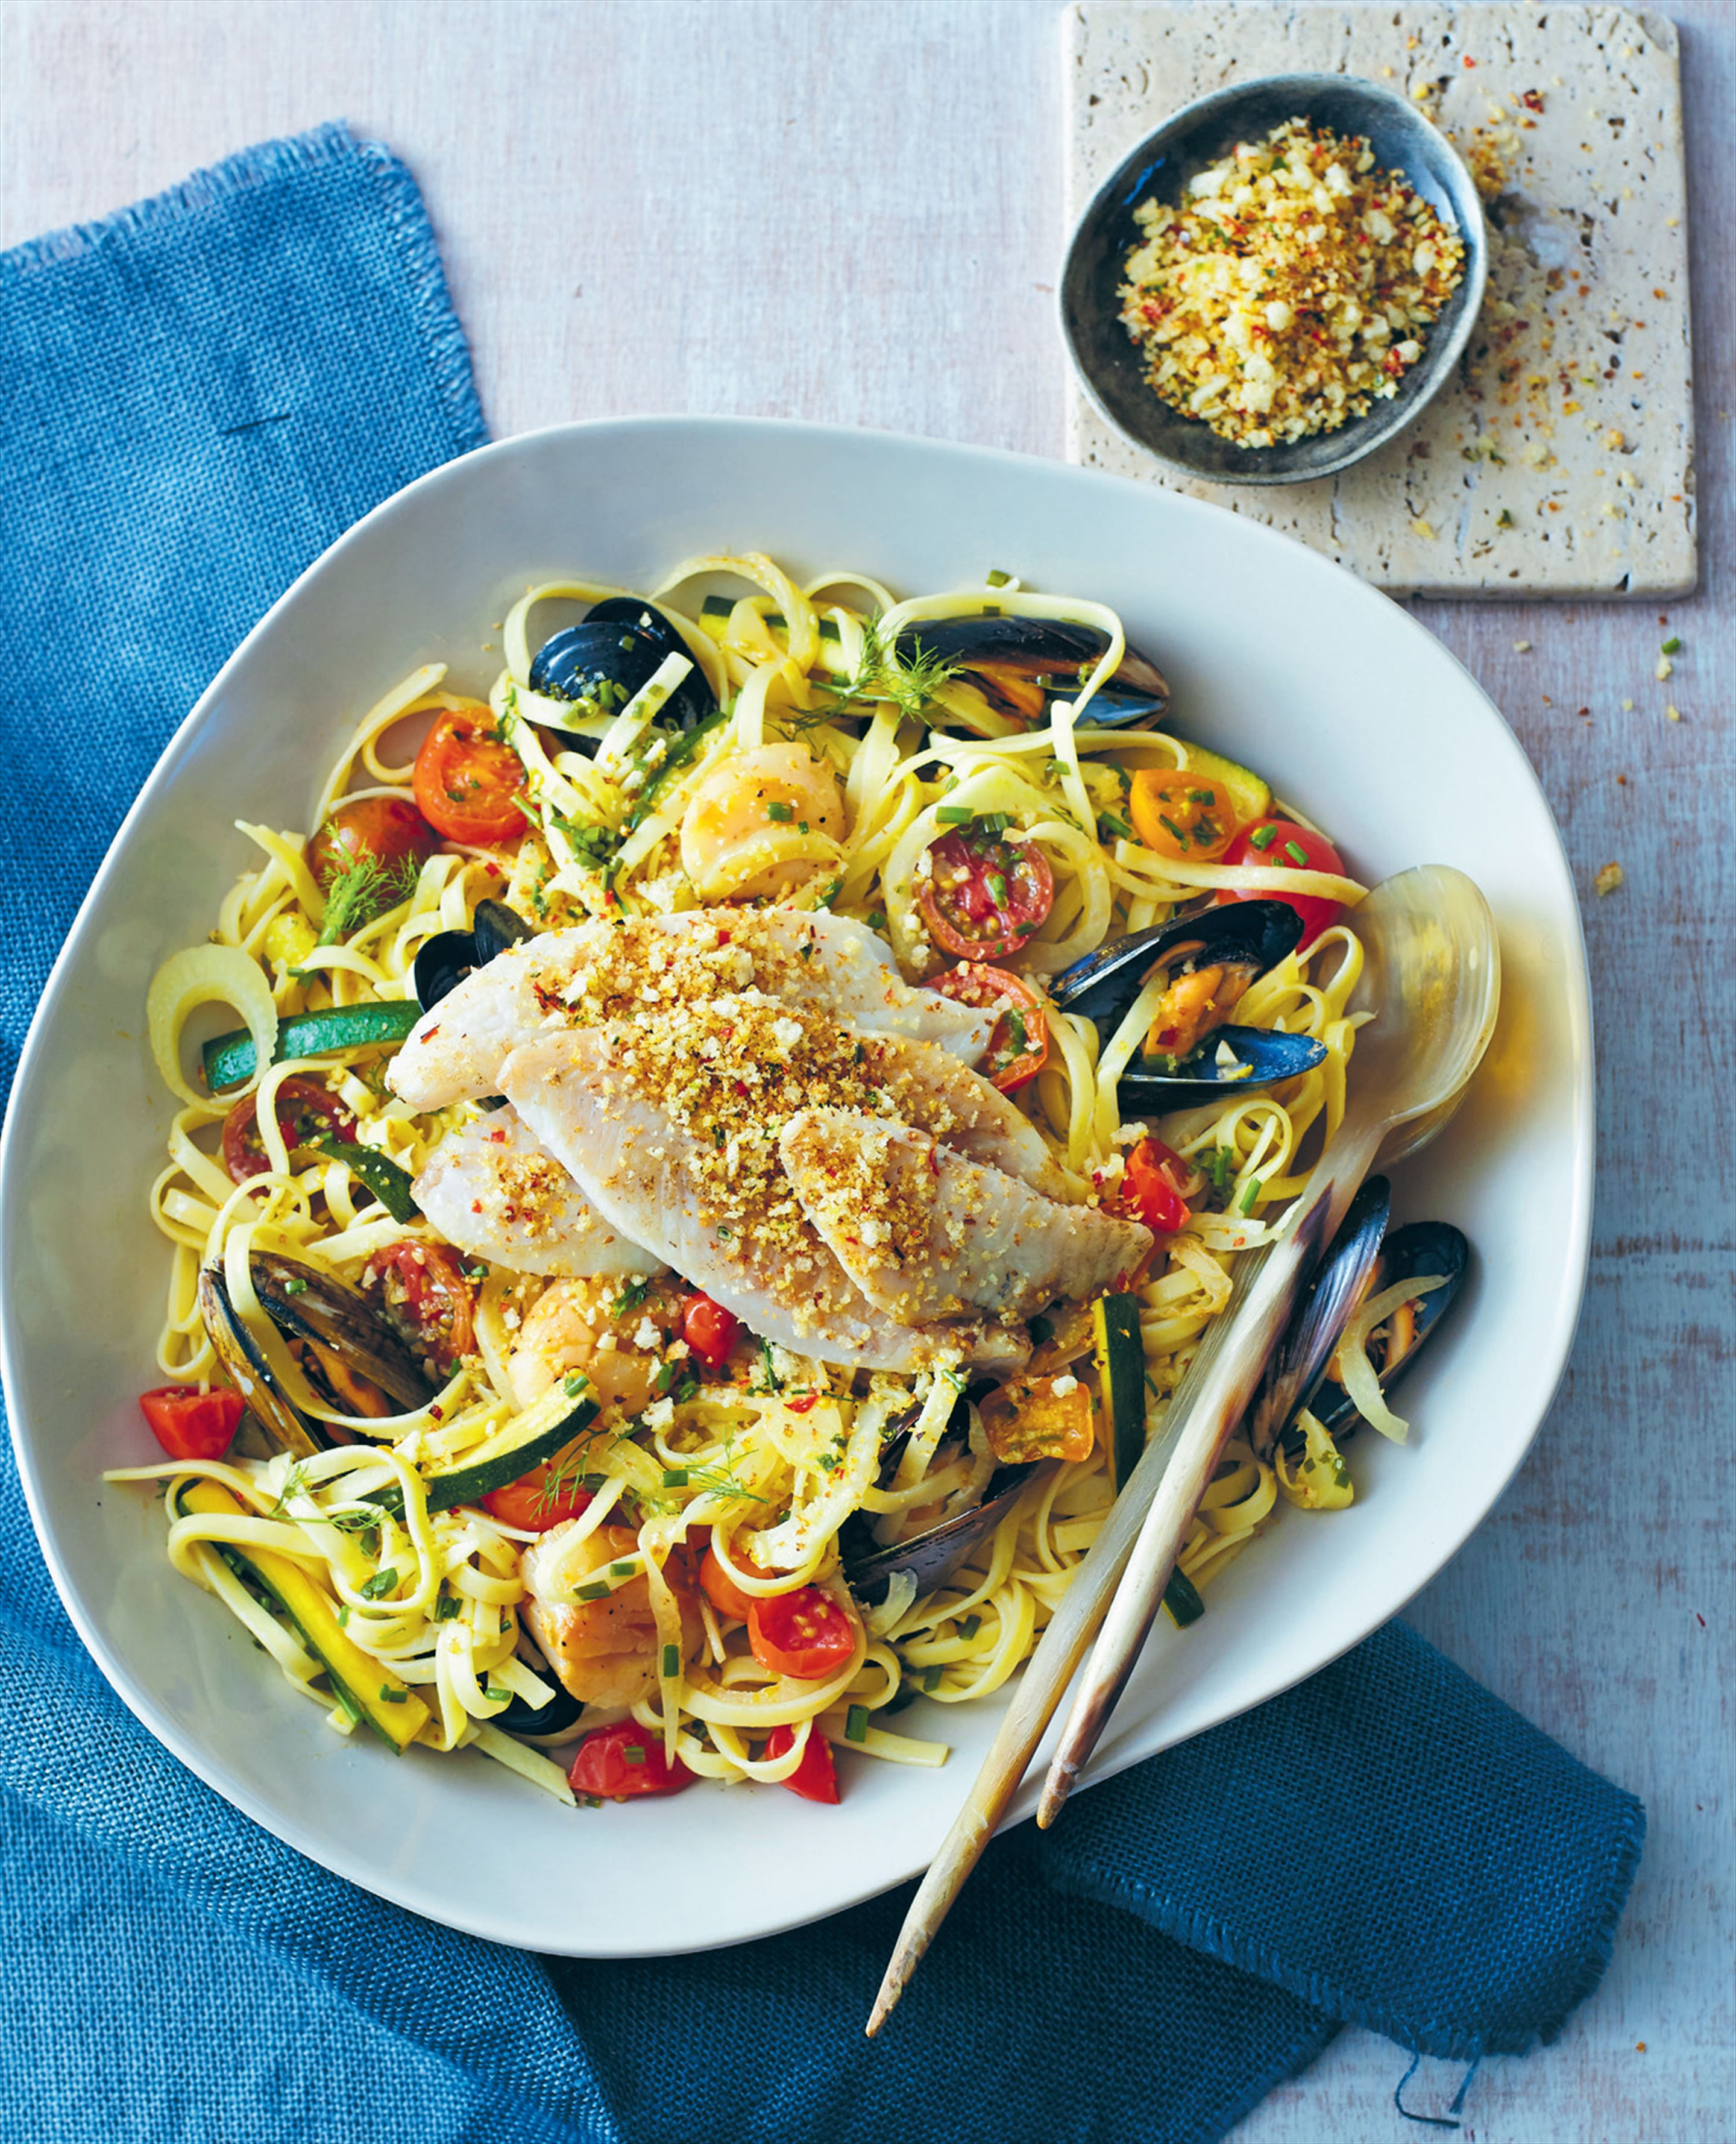 Linguine with seafood and garlic crumbs